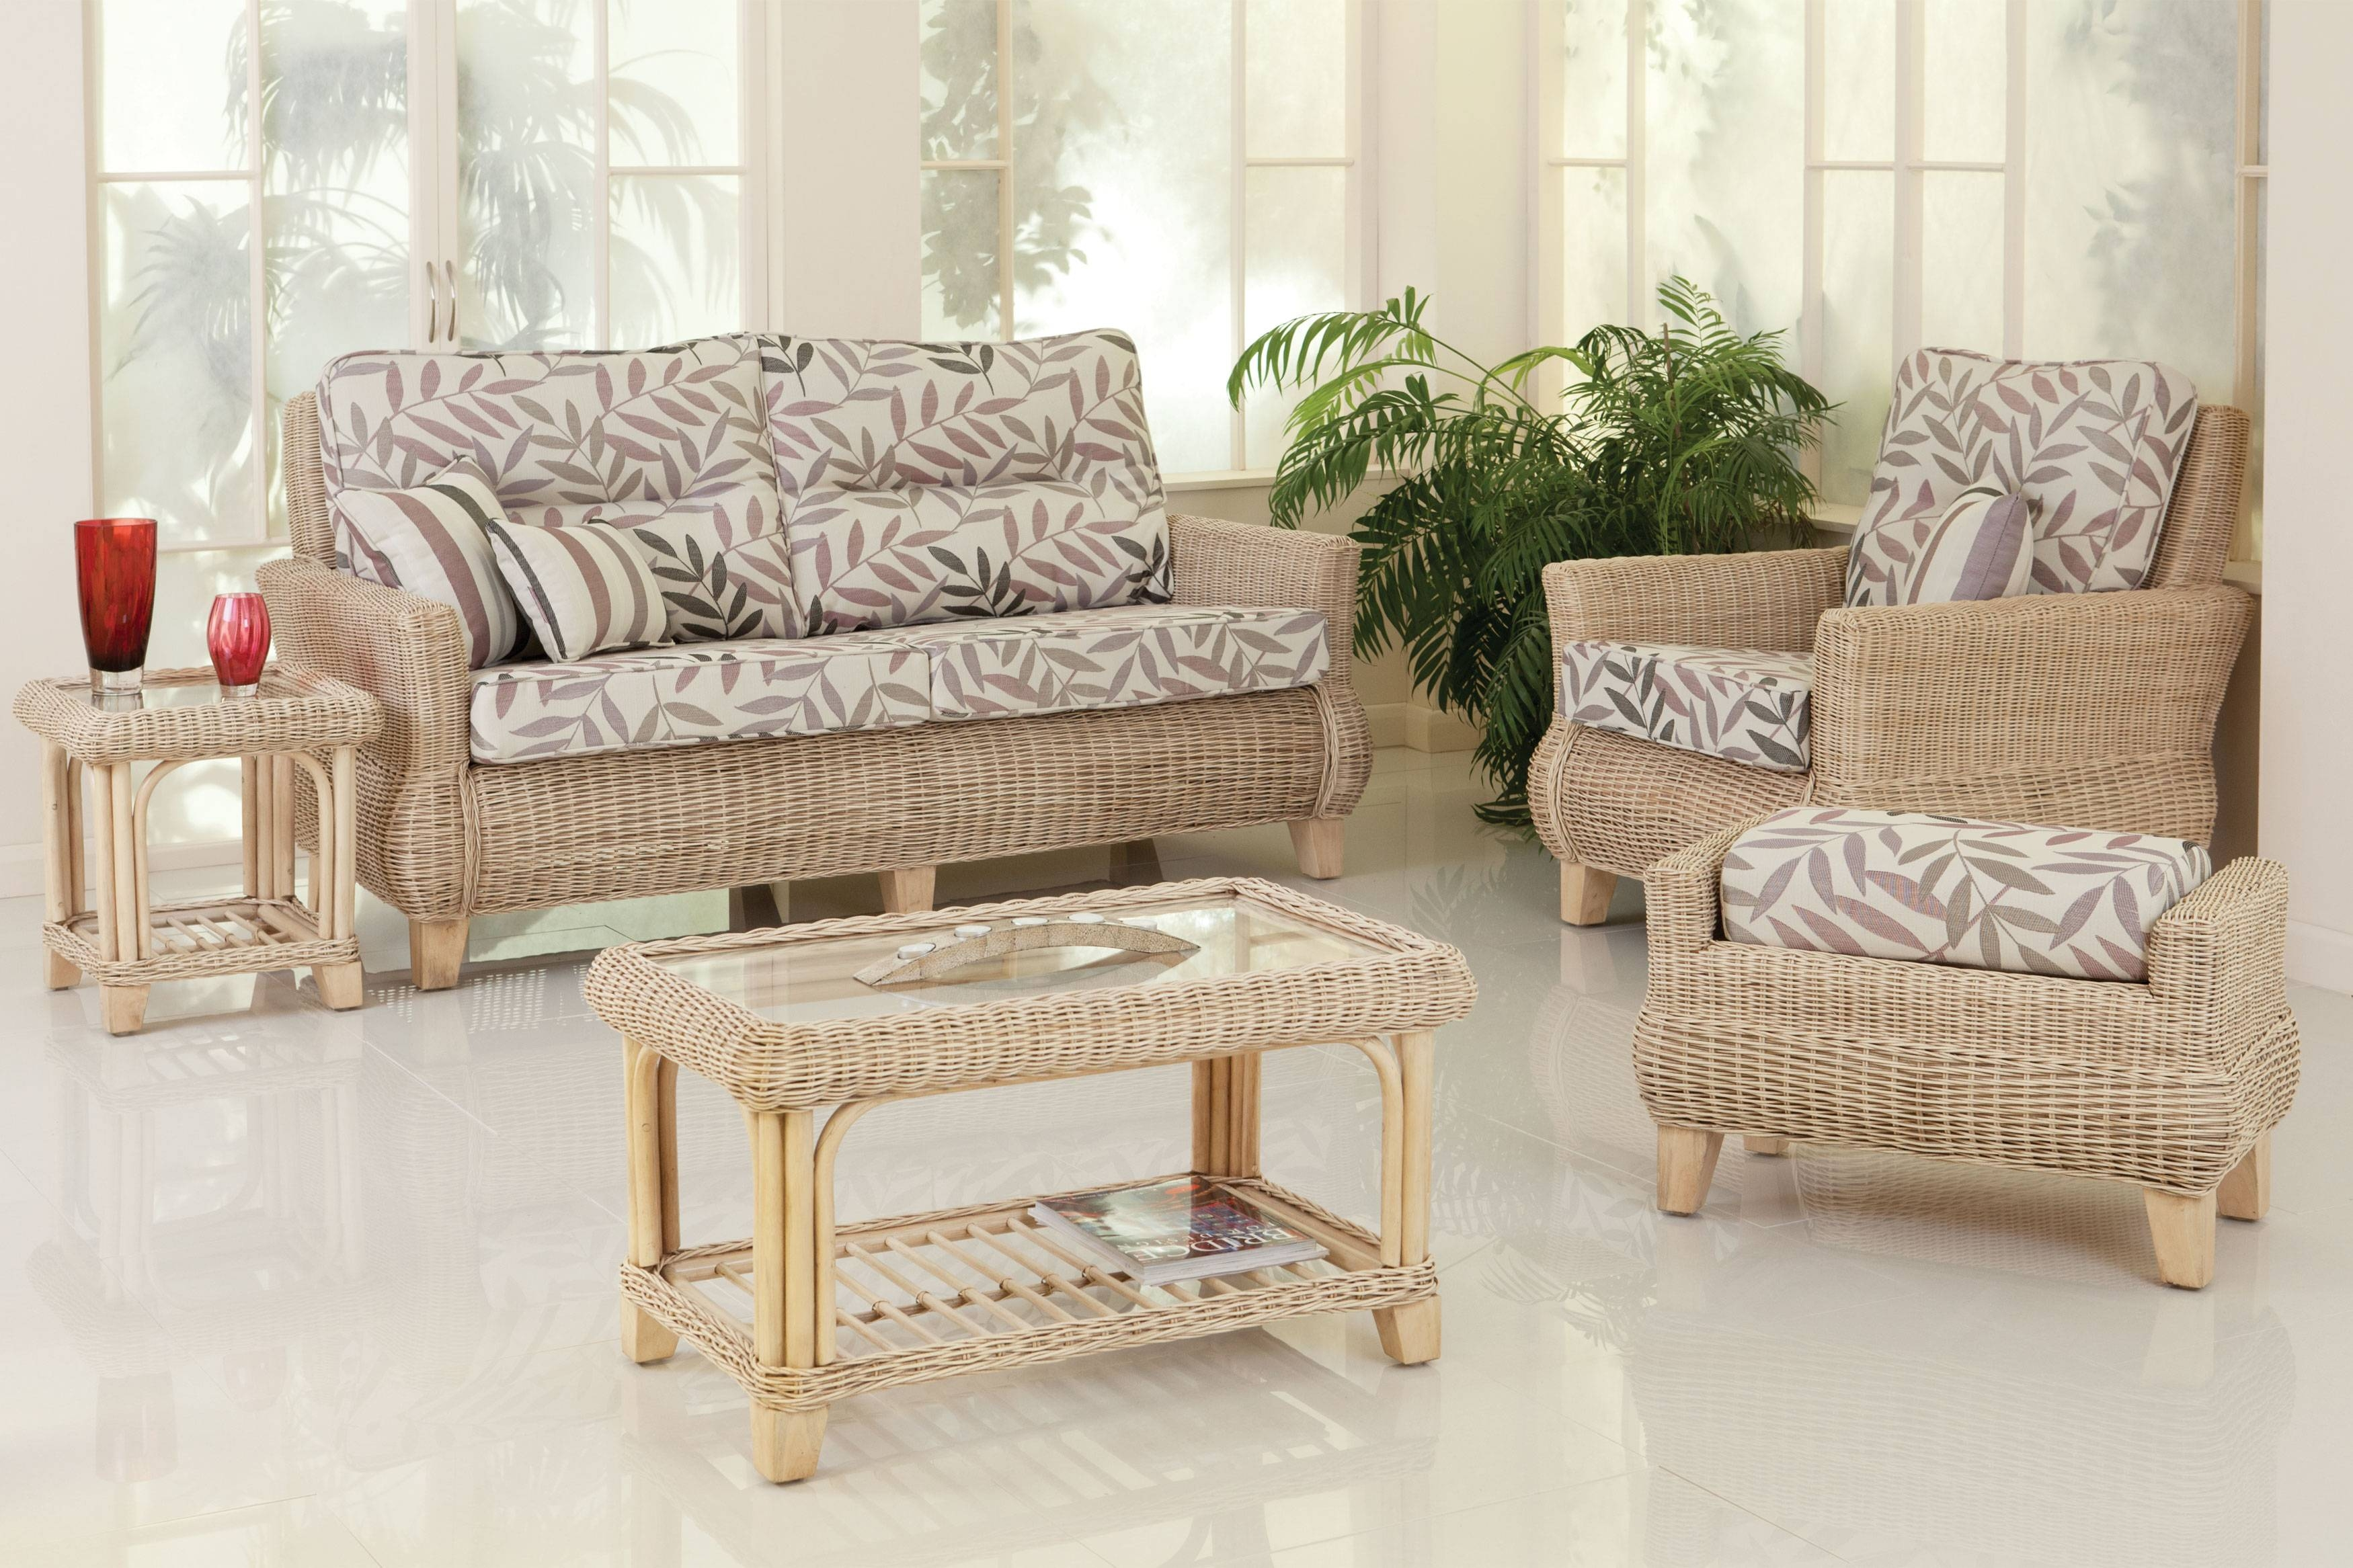 Retail Sales Rise | Daro Cane Furniture, Rattan Furniture, Wicker intended for Cane Sofas (Image 12 of 15)